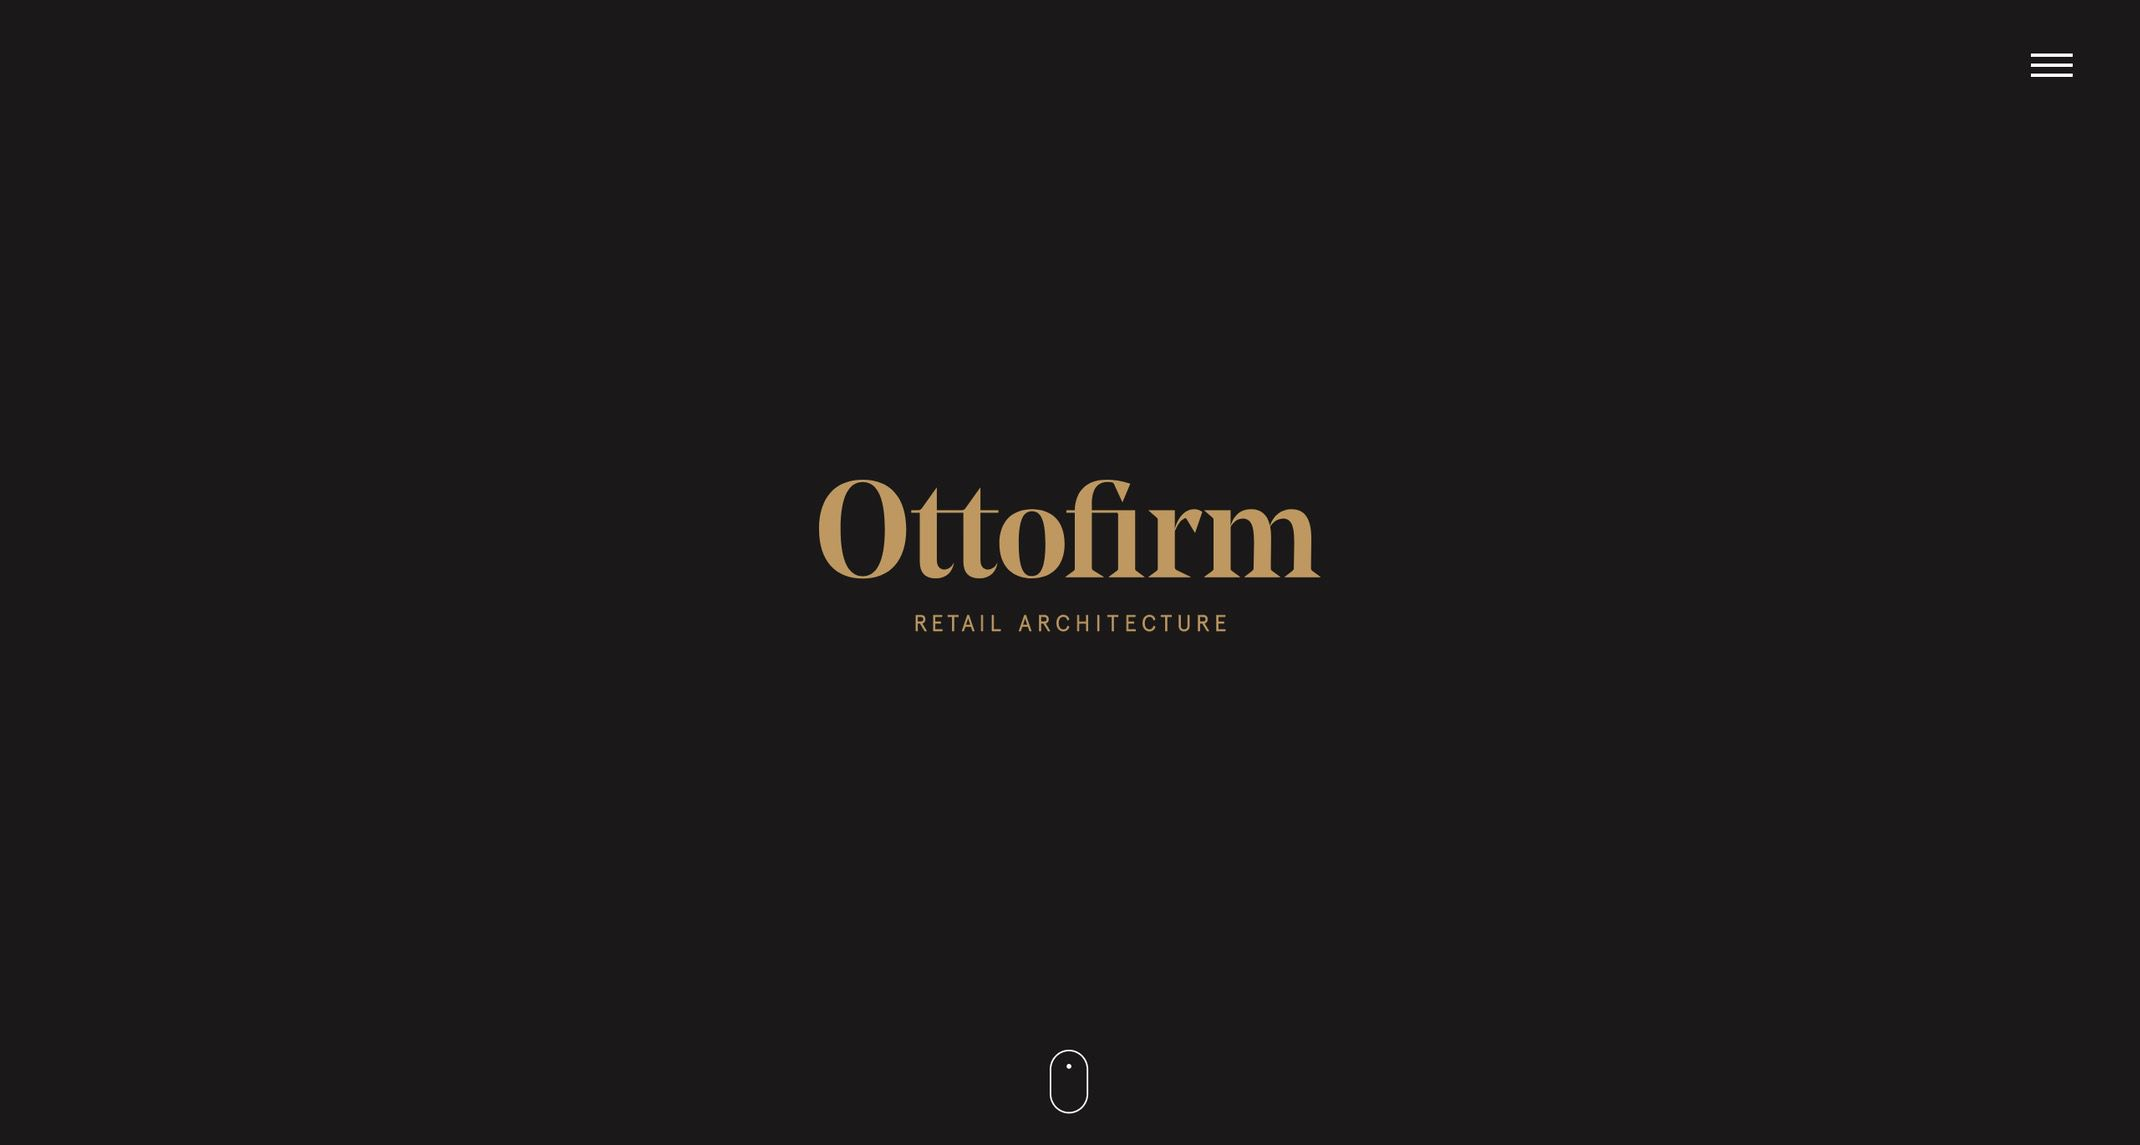 AwesomeScreenshot-OttoFirm-home@2x